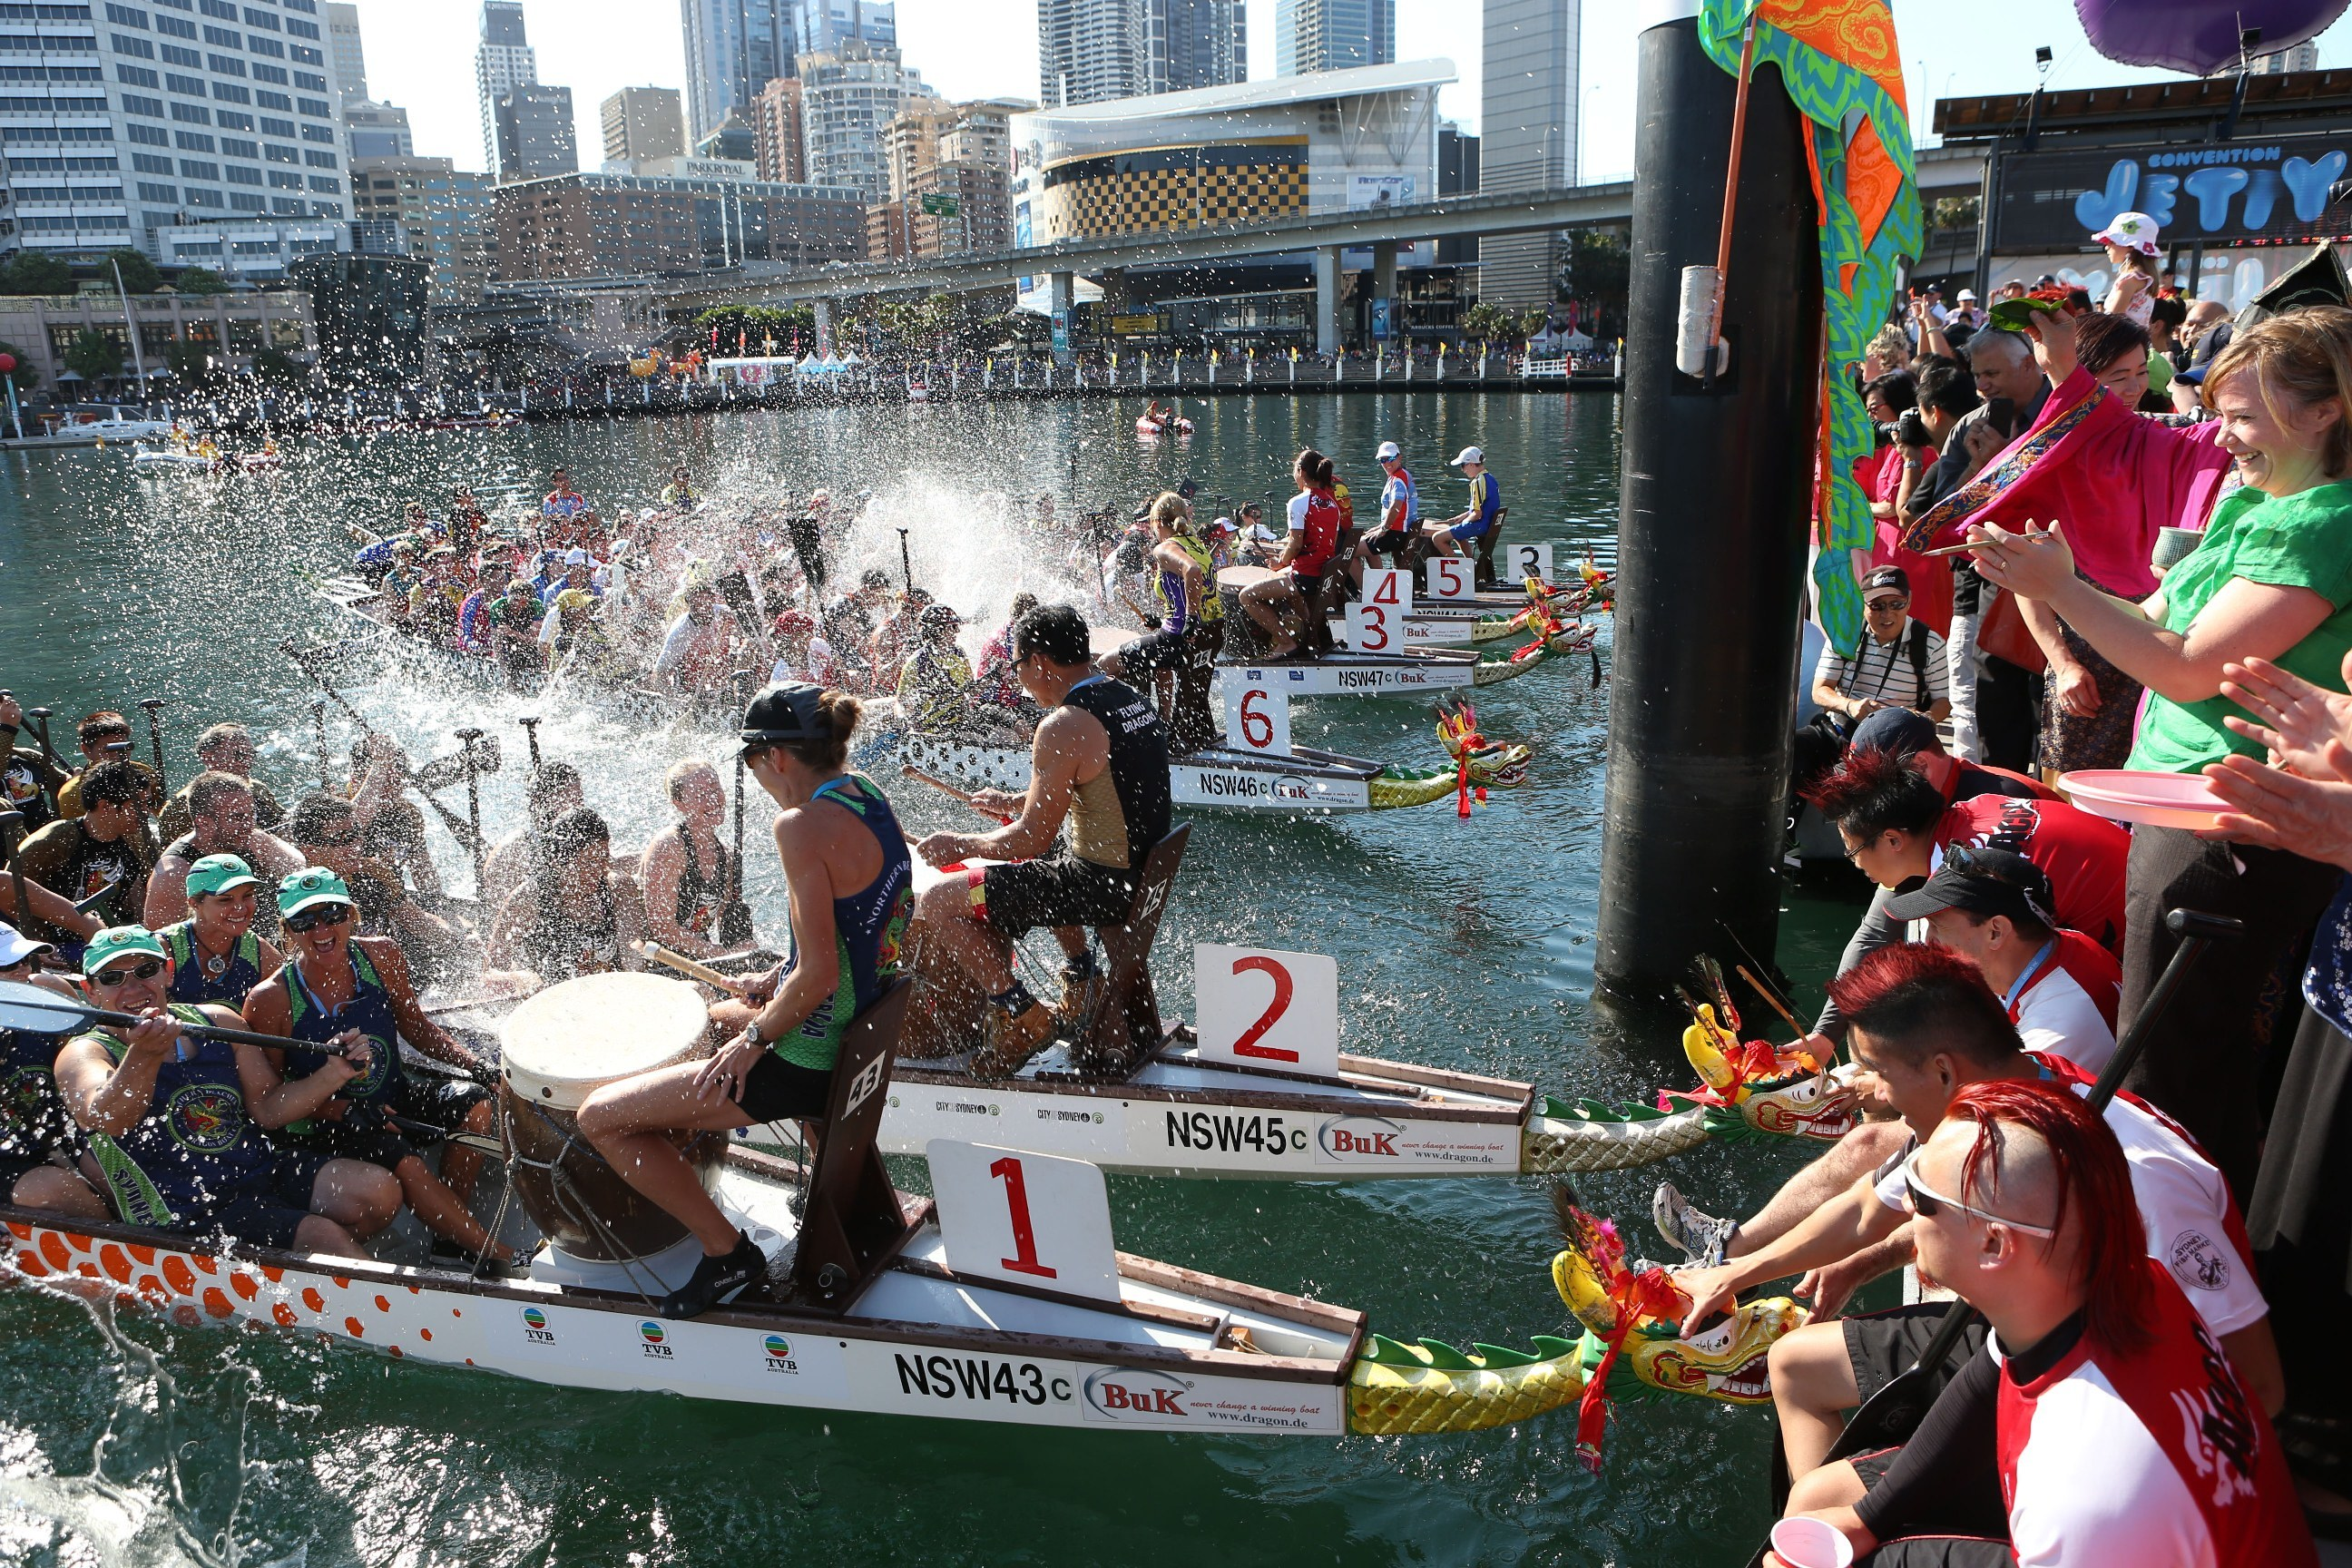 ragon Boat Races, Darling Harbour